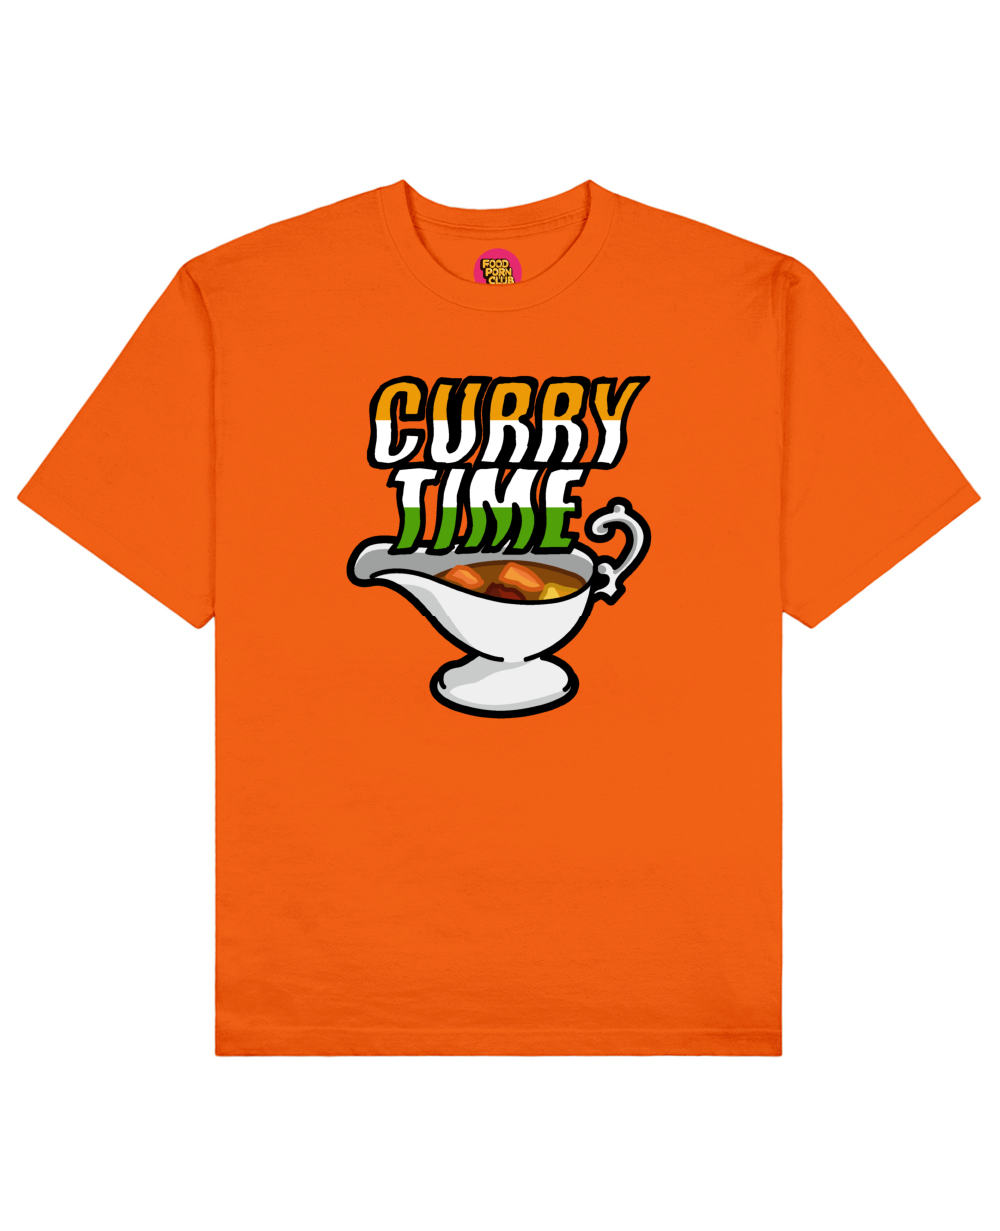 Curry Time Print T-Shirt in Orange - T-Shirts - FOOD PORN CLUB - BRANMA